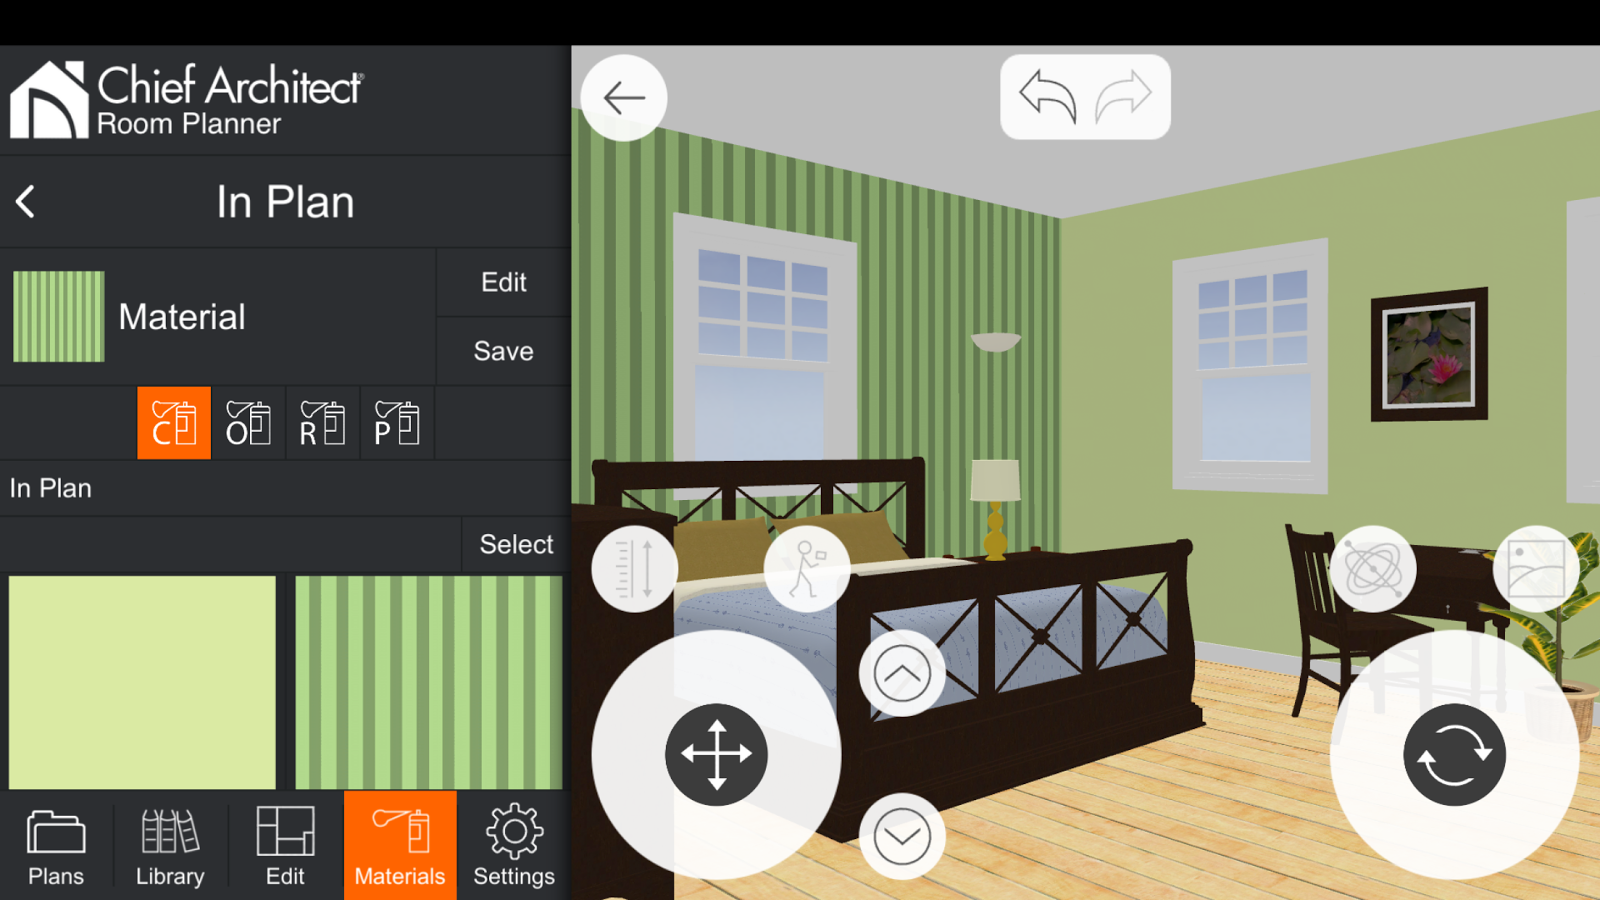 Room planner le home design 5 0 1 apk download android for Room planner software free download